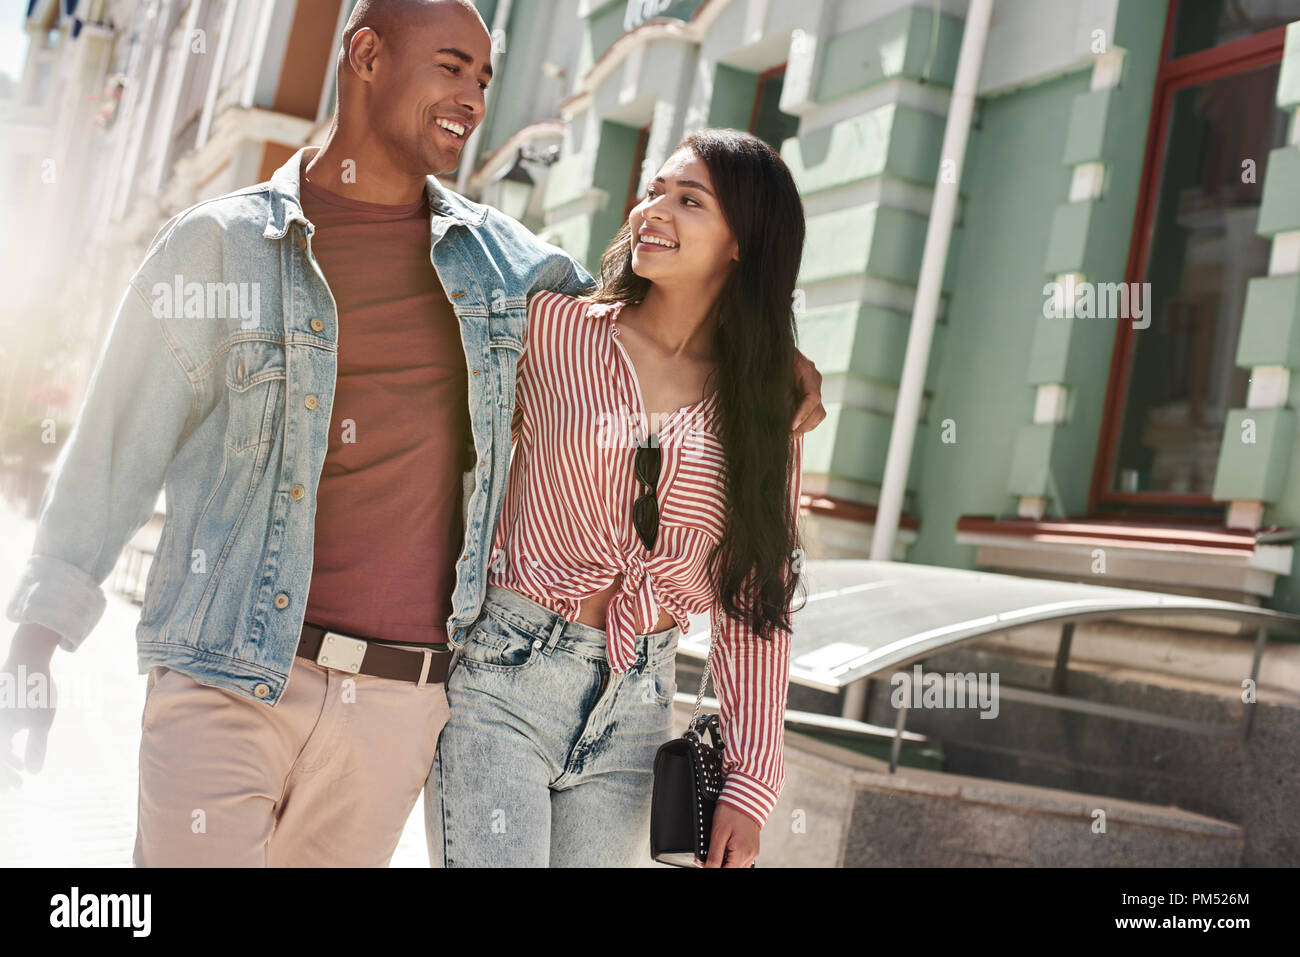 Romantic Relationship. Young diverse couple walking on the city street hugging looking at each other talking smiling happy - Stock Image